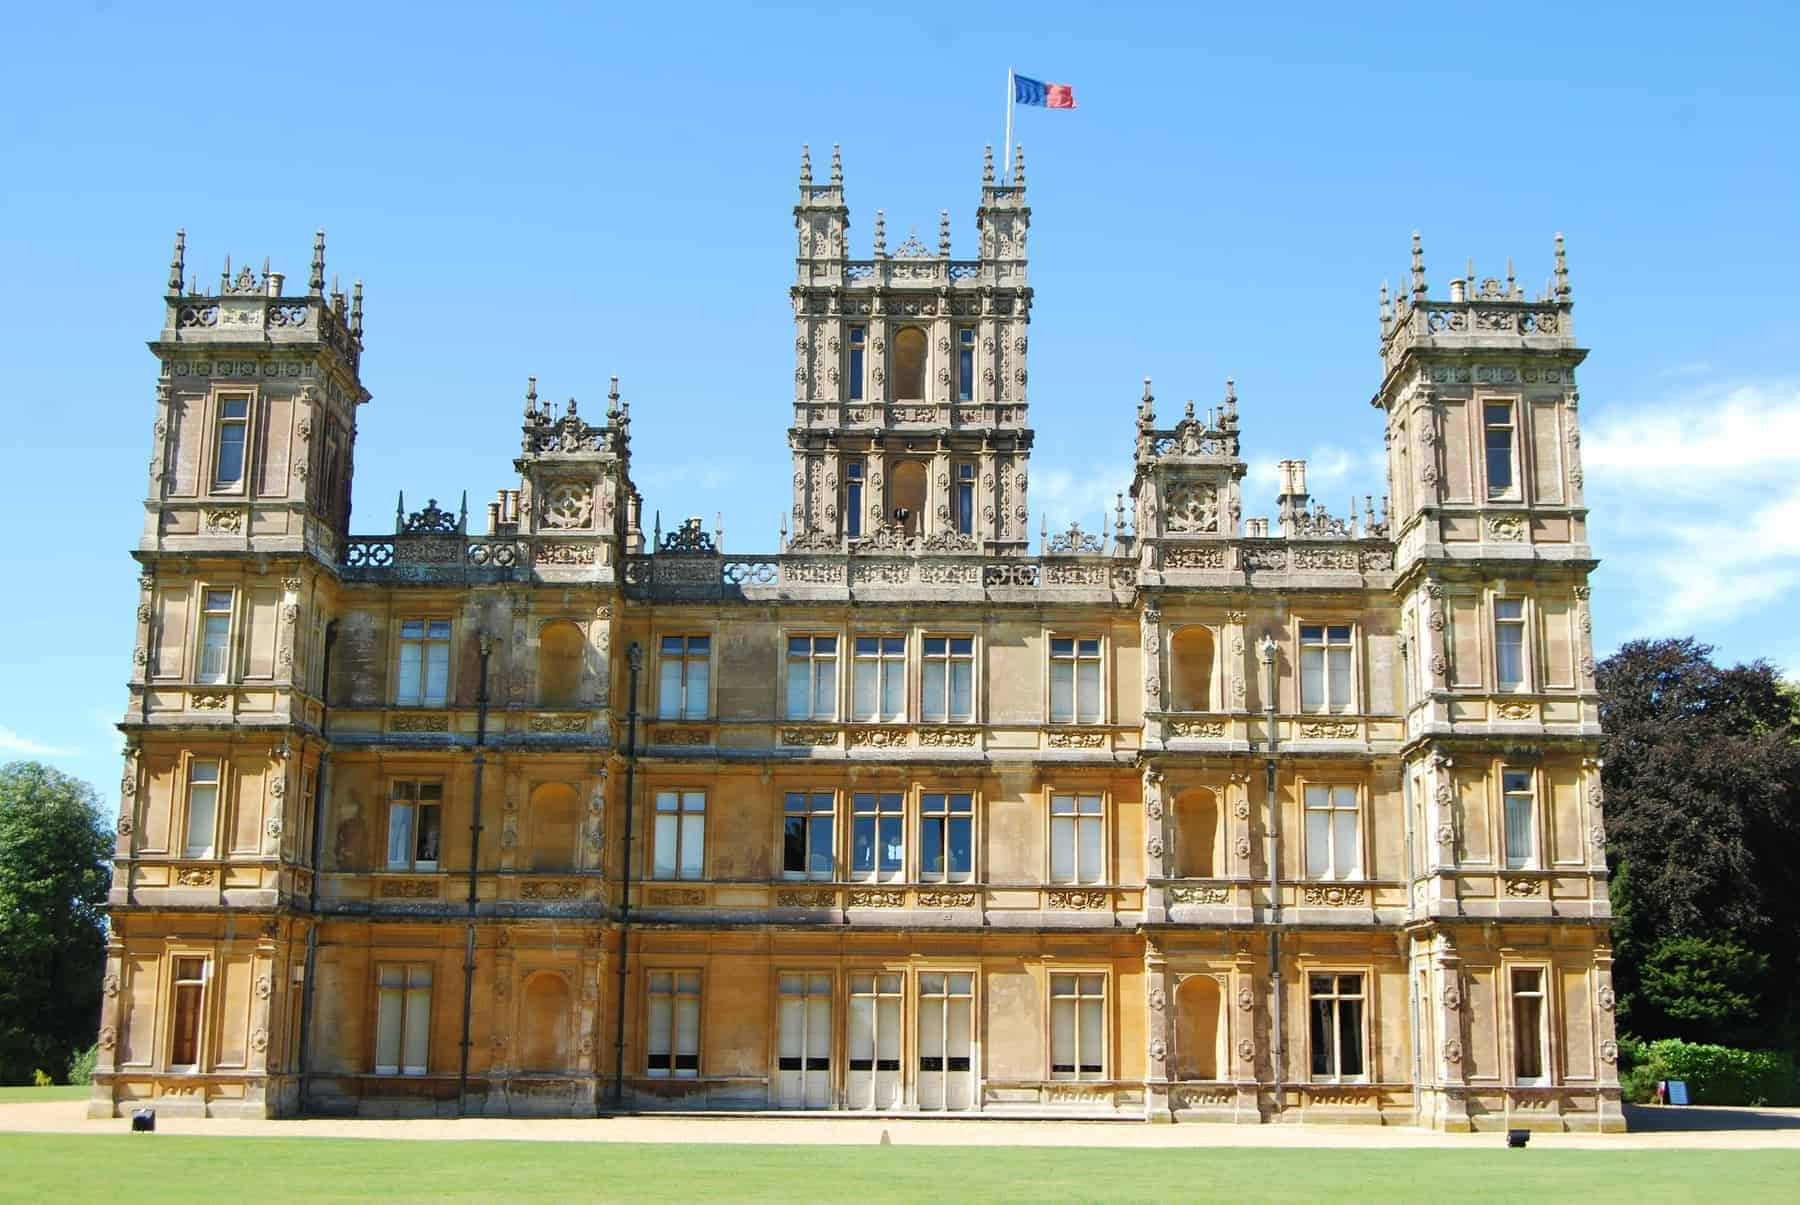 Highclere Castle is a country house in the Jacobean style, with a park designed by Capability Brown. The 5,000-acre estate is in Hampshire, England, United Kingdom, about 5 miles south of Newbury, Berkshire. It is the country seat of the Earl of Carnarvon, a branch of the Anglo-Welsh Herbert family. The architecture is reminiscent of the Houses of Parliament in London. Popular TV show Downton Abbey was largely filmed here and the tour of the castle rooms takes you into many rooms used in the series.